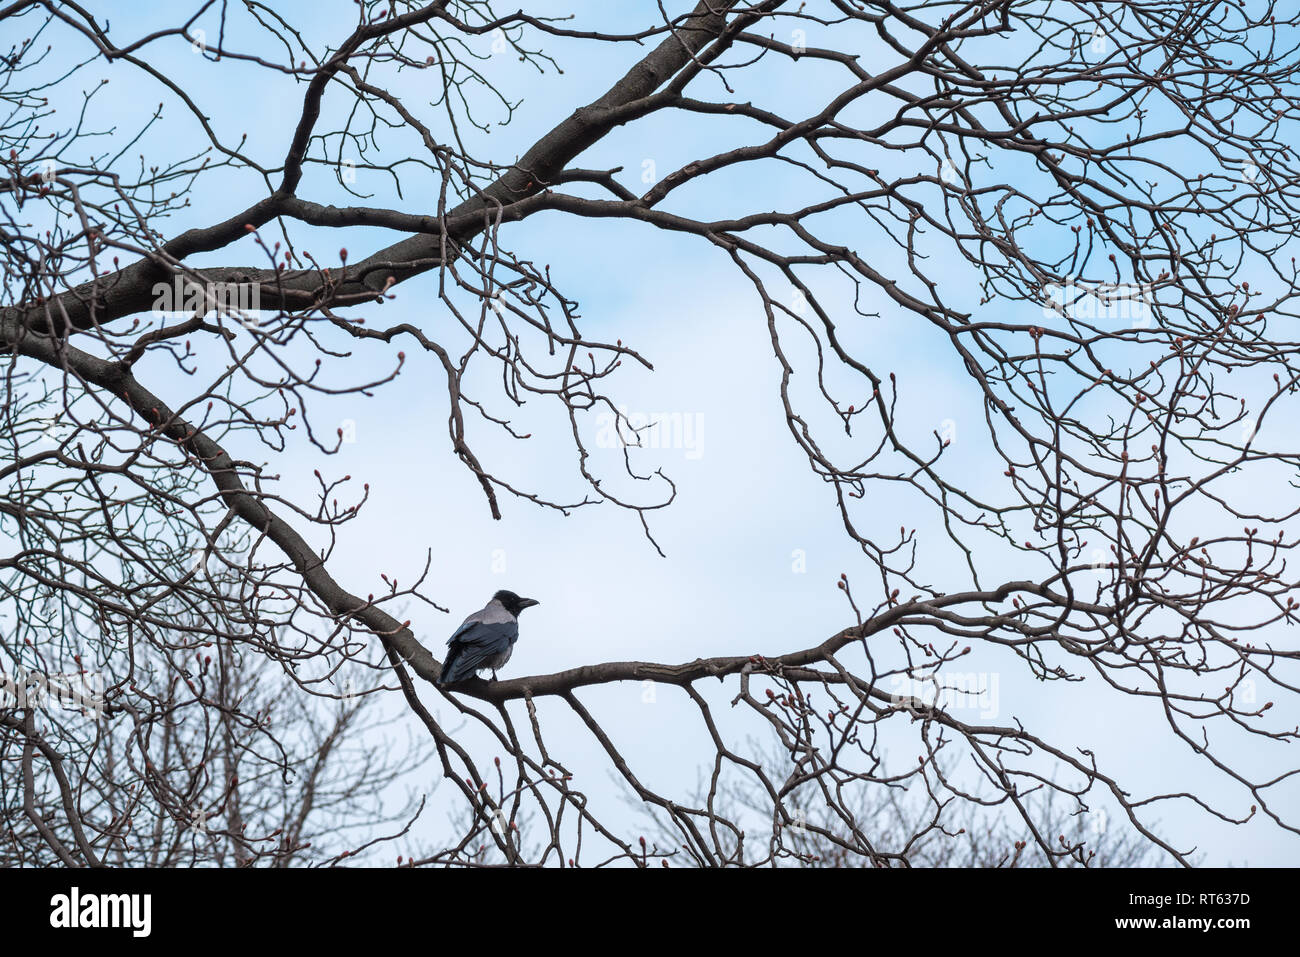 crow sits on a beautiful picturesque branchless tree without leaves dot autumn-winter landscape - Stock Image